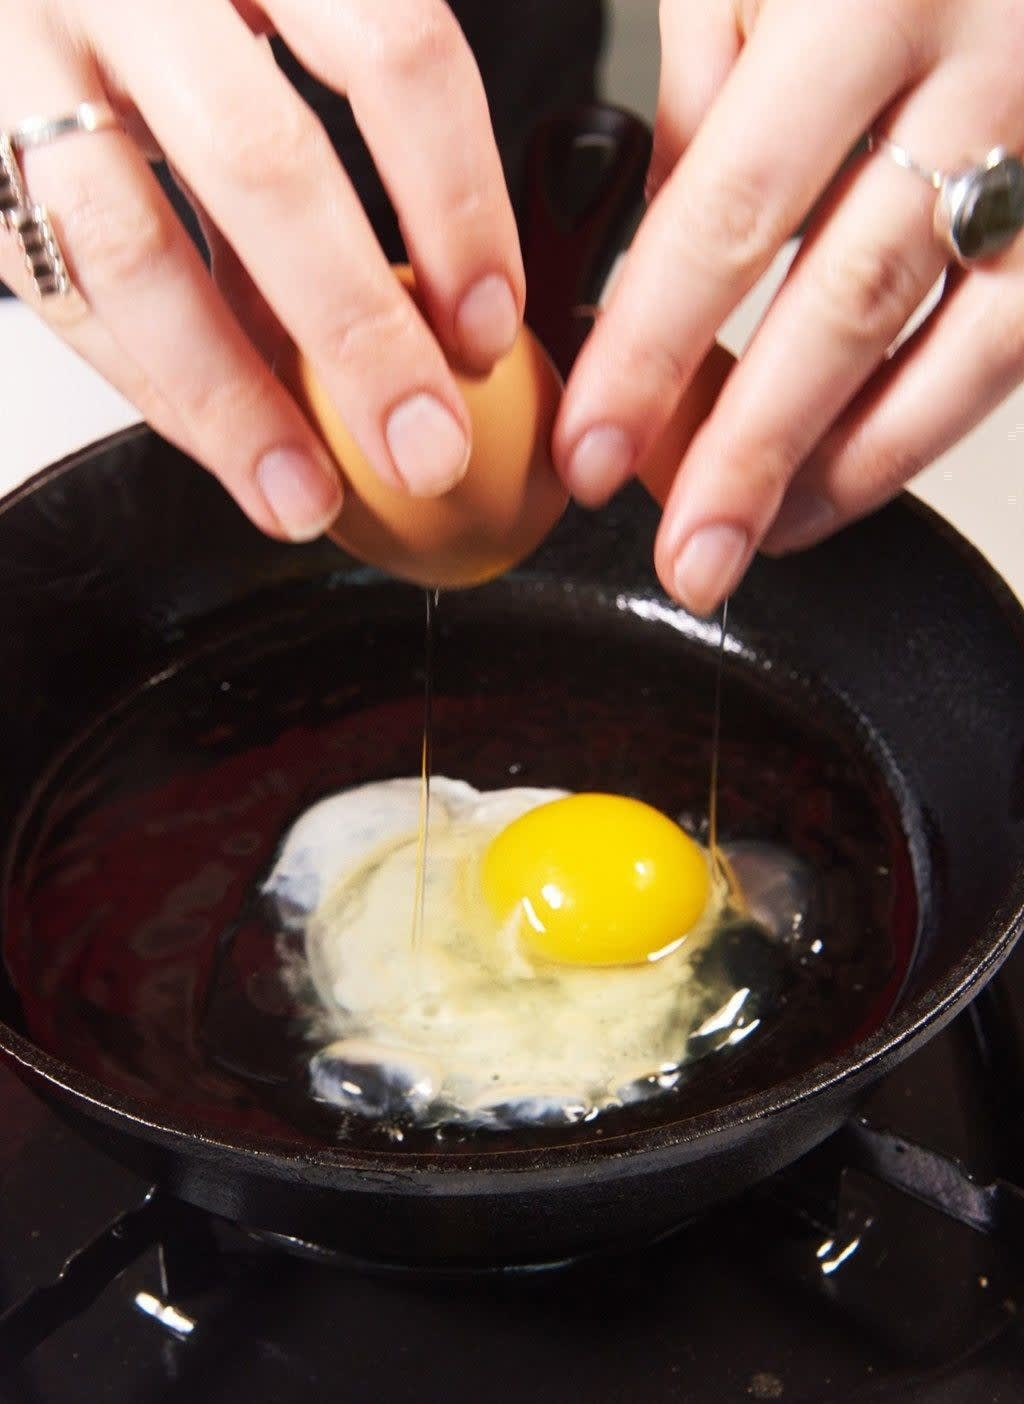 Cracking an egg into a frying pan.